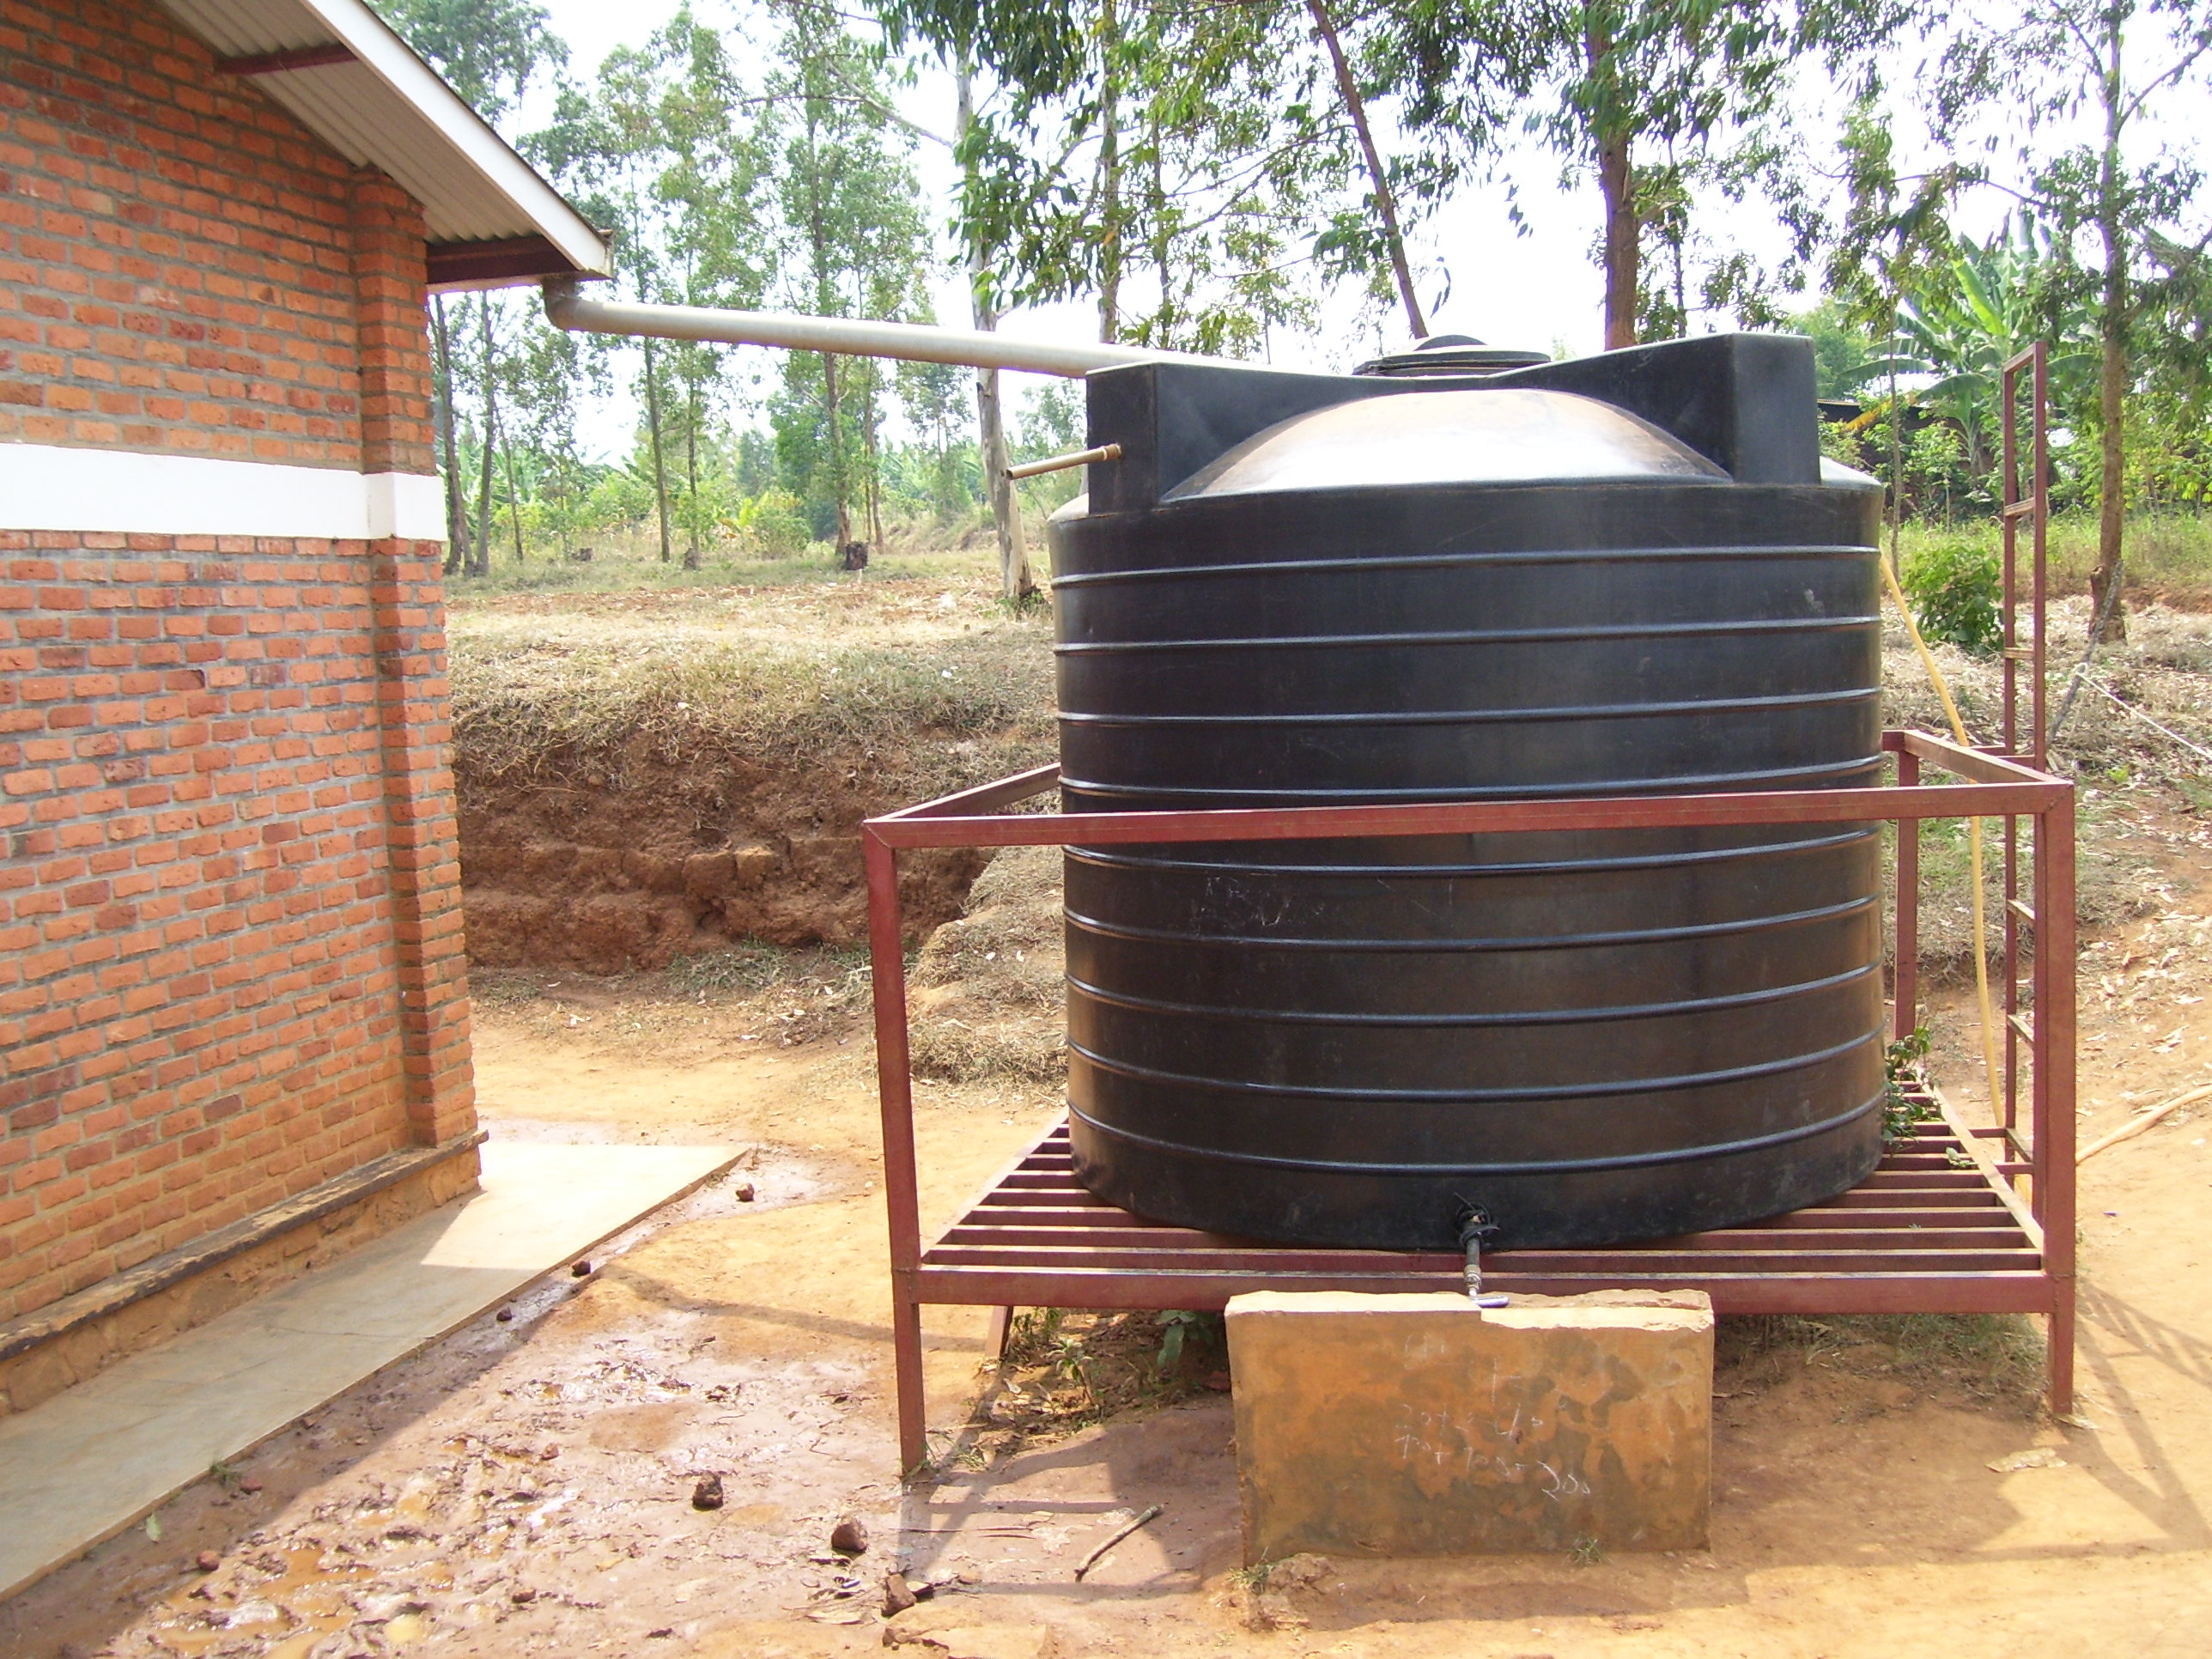 Underground Water Storage Systems Vertical Water Storage